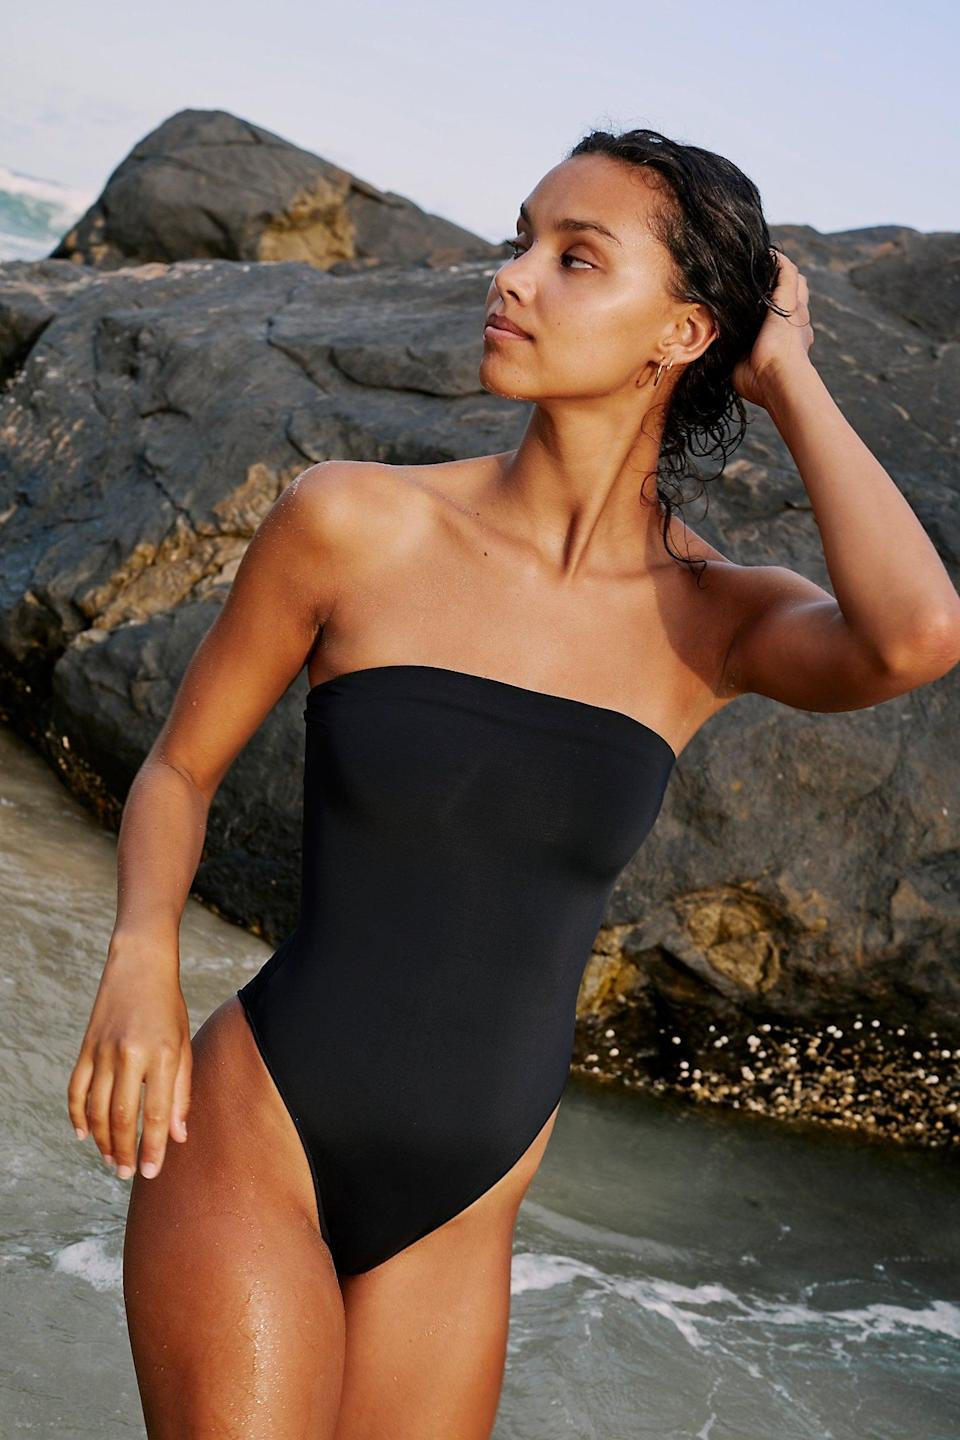 "<p>You can't go wrong with this classic and chic <a href=""https://www.popsugar.com/buy/Toast-Signature-Tube-One-Piece-573803?p_name=Toast%20Signature%20Tube%20One-Piece&retailer=freepeople.com&pid=573803&price=90&evar1=fab%3Aus&evar9=45617247&evar98=https%3A%2F%2Fwww.popsugar.com%2Fphoto-gallery%2F45617247%2Fimage%2F47506333%2FToast-Signature-Tube-One-Piece&list1=shopping%2Cspring%2Csummer%2Cswimwear%2Cspring%20fashion%2Csummer%20fashion%2Cbest%20of%202020&prop13=api&pdata=1"" class=""link rapid-noclick-resp"" rel=""nofollow noopener"" target=""_blank"" data-ylk=""slk:Toast Signature Tube One-Piece"">Toast Signature Tube One-Piece</a> ($90).</p>"